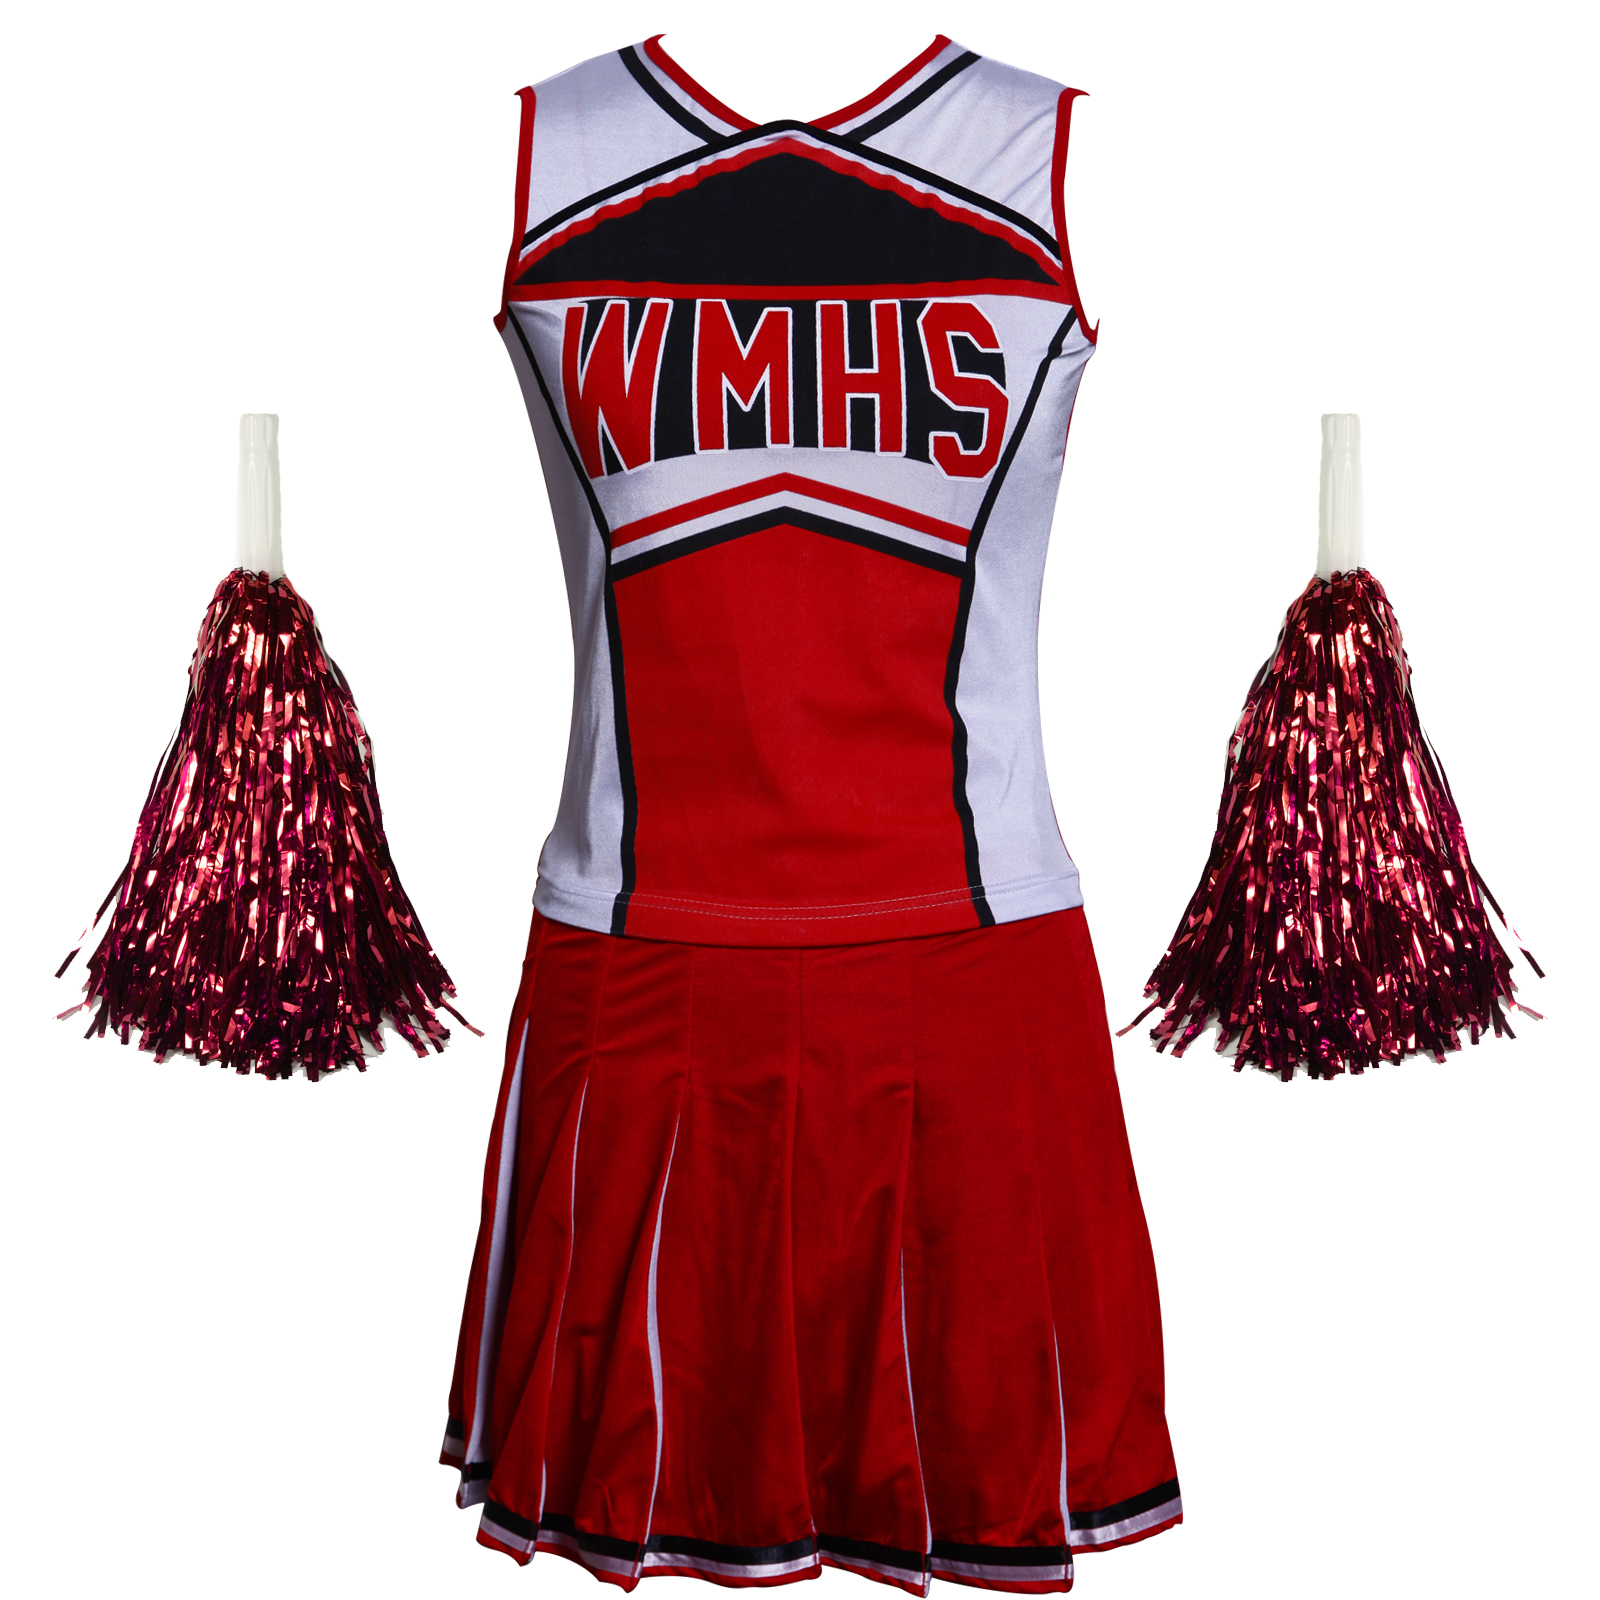 Glee cheerleader clothes skirt high school cheerleading costumes 6 8 glee cheerleader clothes skirt high school cheerleading costumes 6 8 10 12 solutioingenieria Images